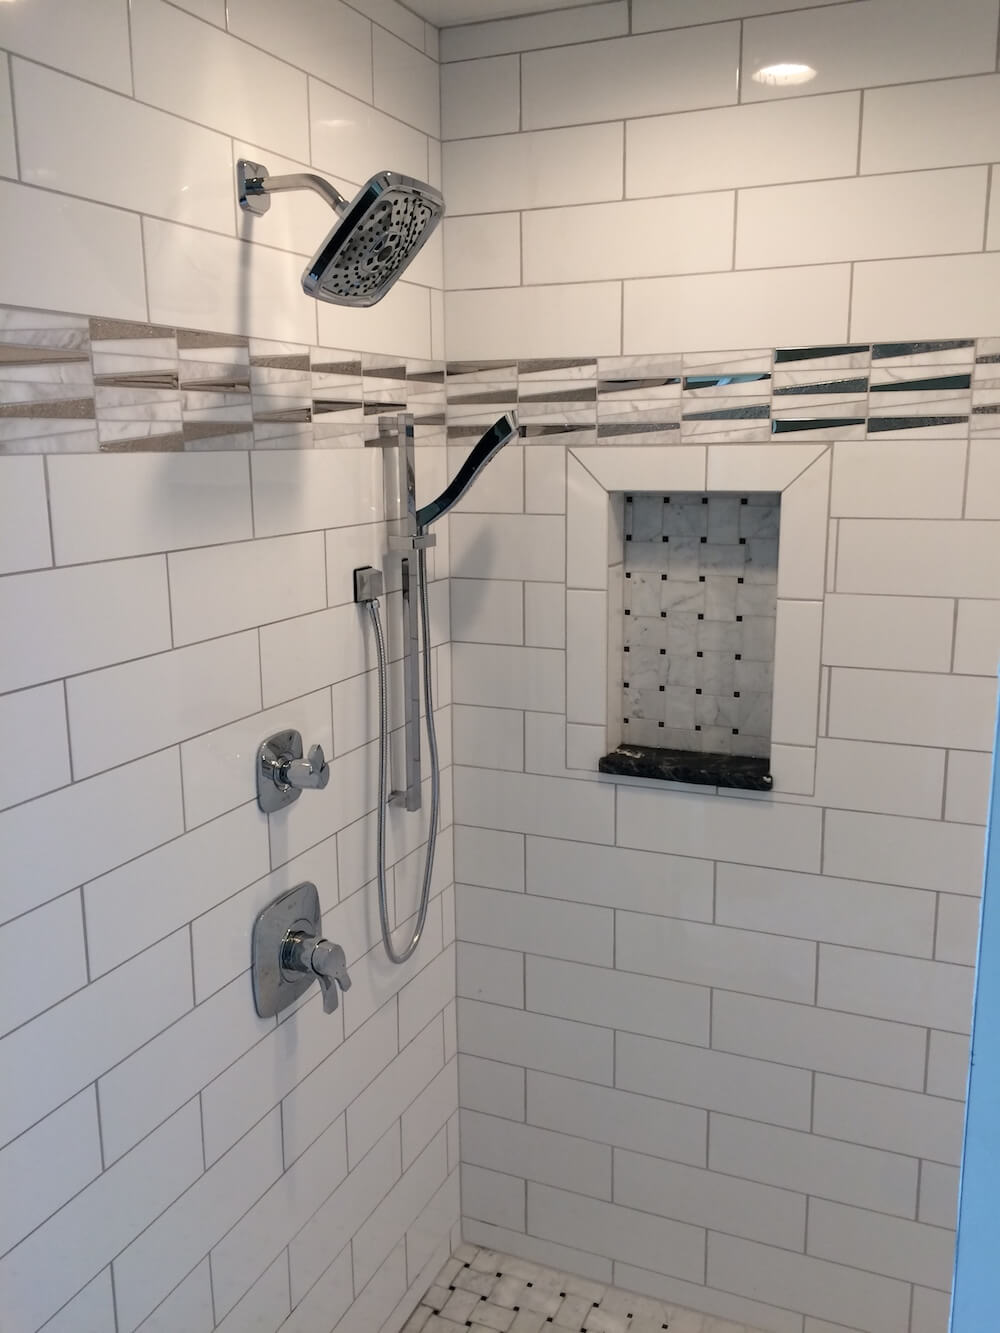 2020 Regrouting Shower Tile Cost Regrout Price